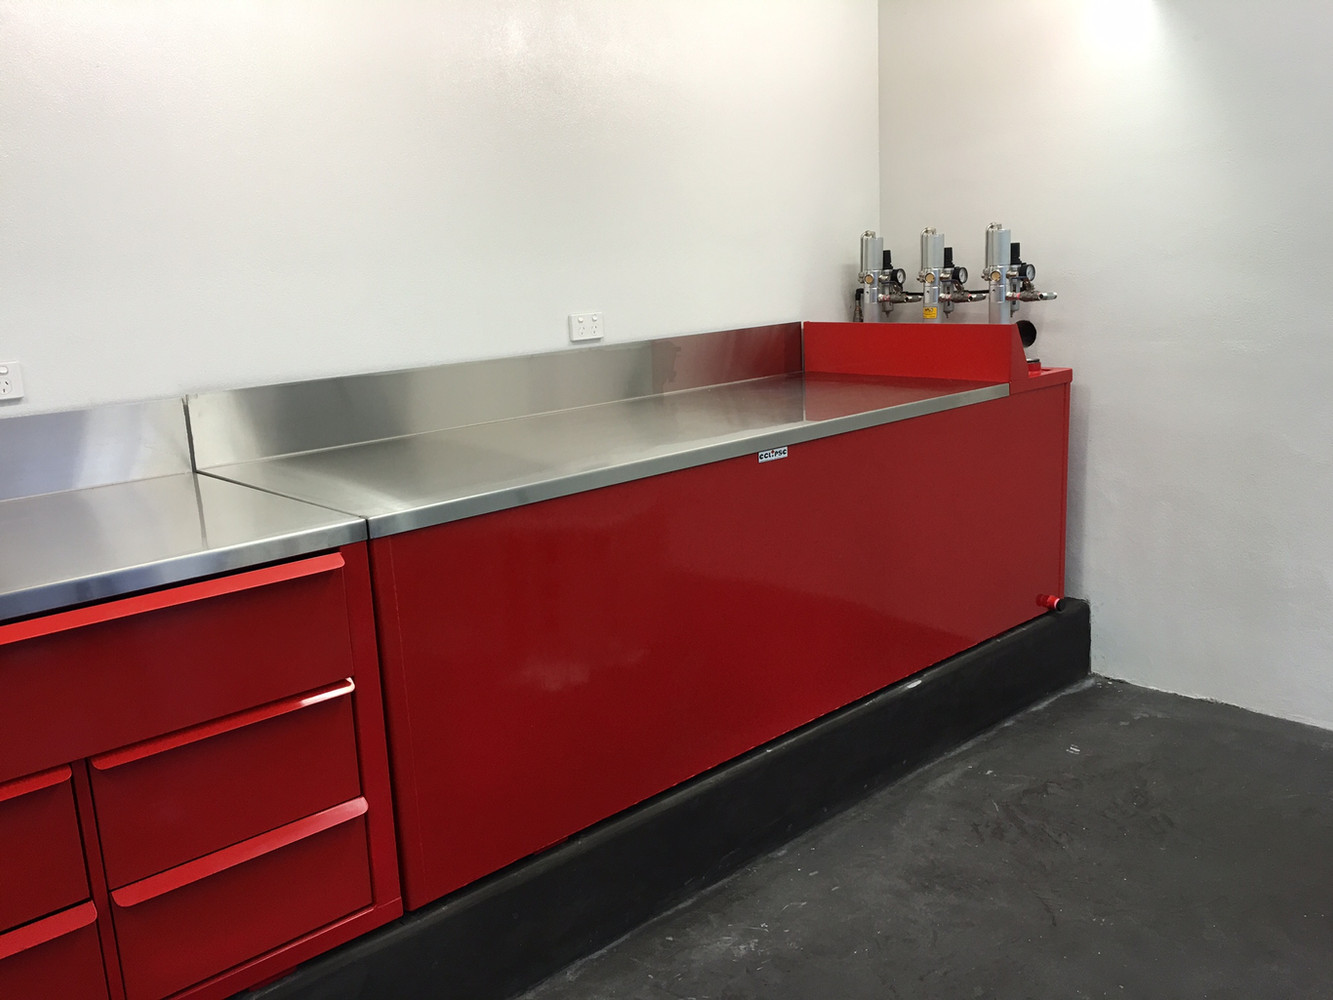 Custom Benches and Oil Tanks